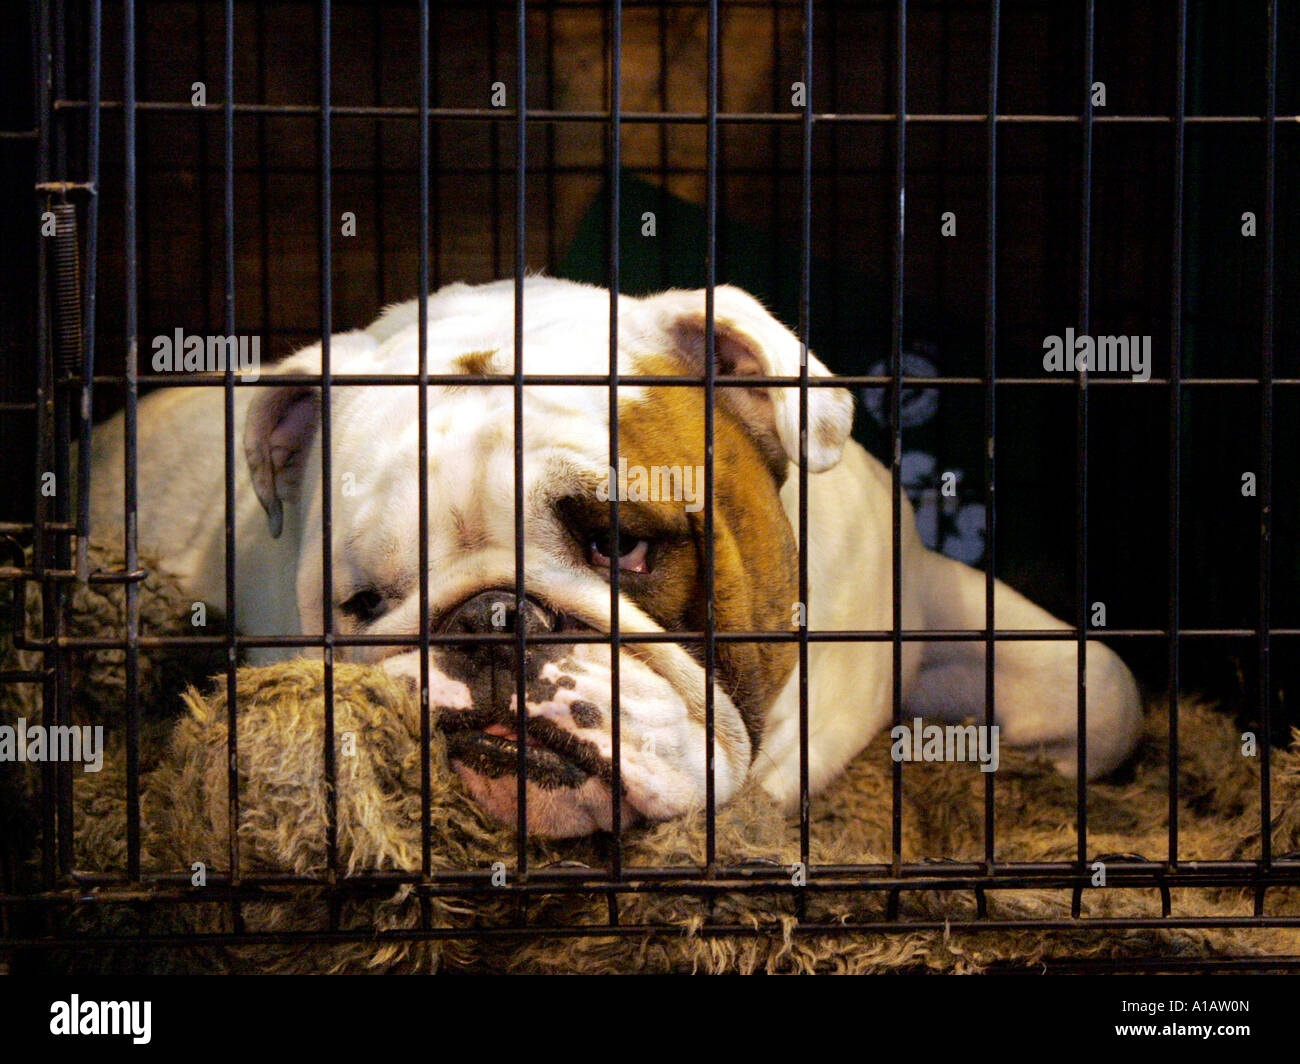 A british bulldog looking bored in a cage at Crufts 2008. - Stock Image